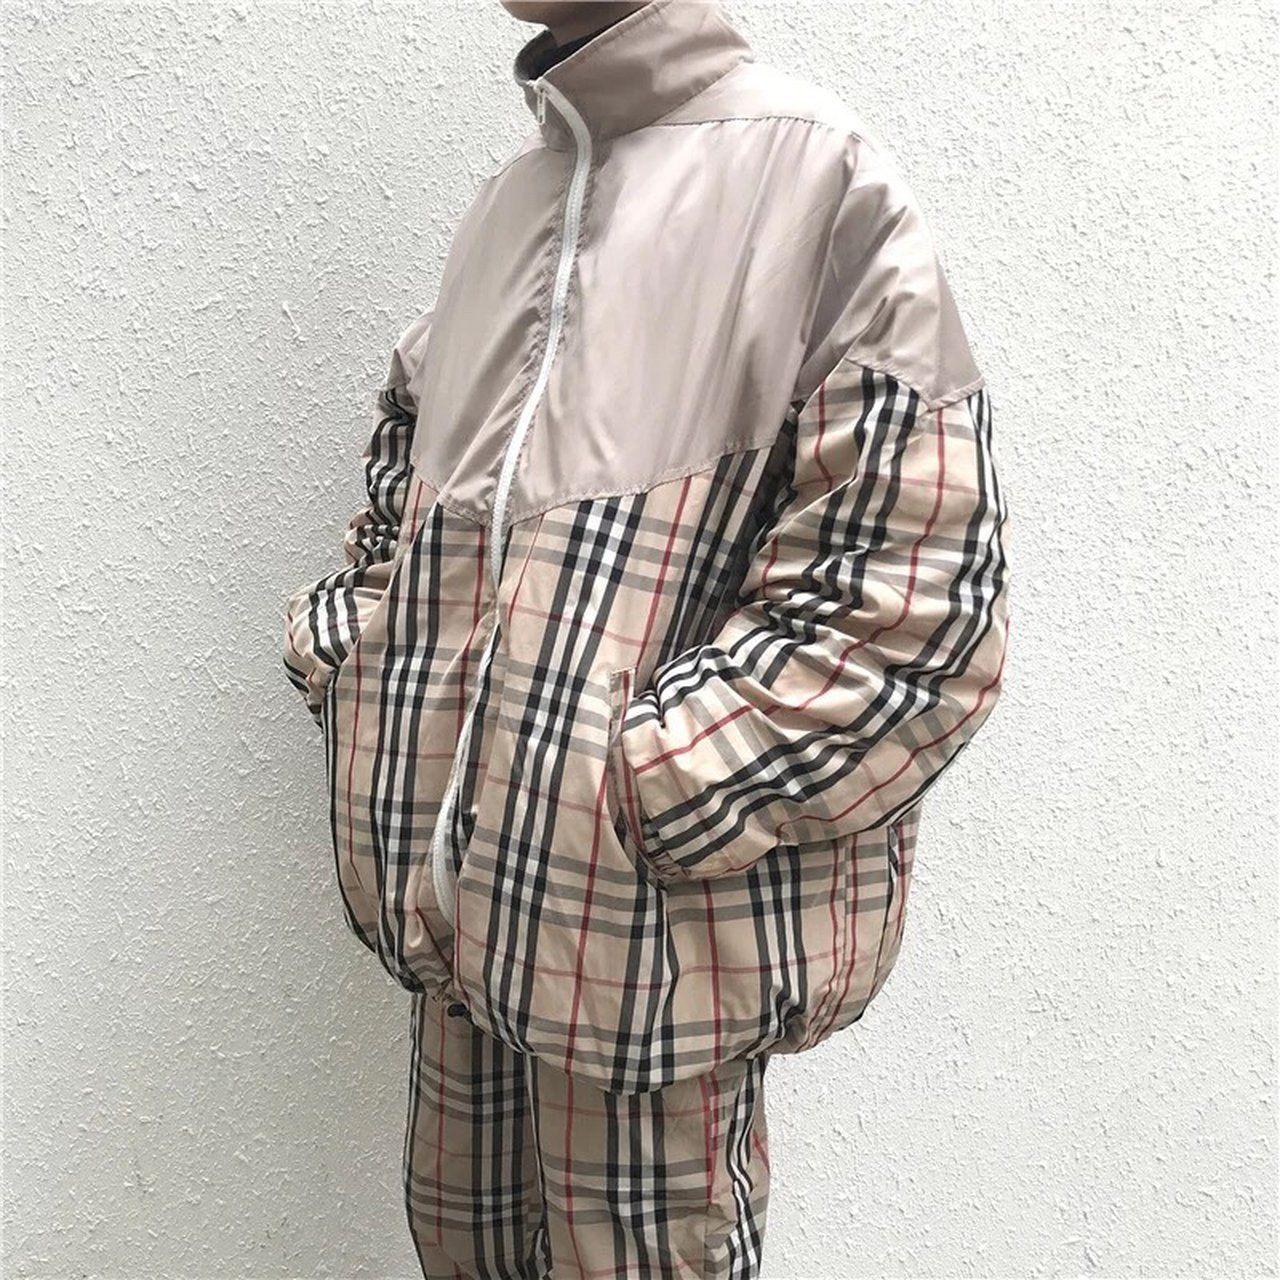 burberry vibe Nova checked puffer jacket , good for winter M : chest 134 Shoulder 79 Sleeve 44 Length :71 L : chest 138 Shoulder80 Sleeve45 Length :72 XL : chest 142 Shoulder81 Sleeve46 Length :73 Brand New condition Message me before purchase Ship worldwide but postage is varied due to different country